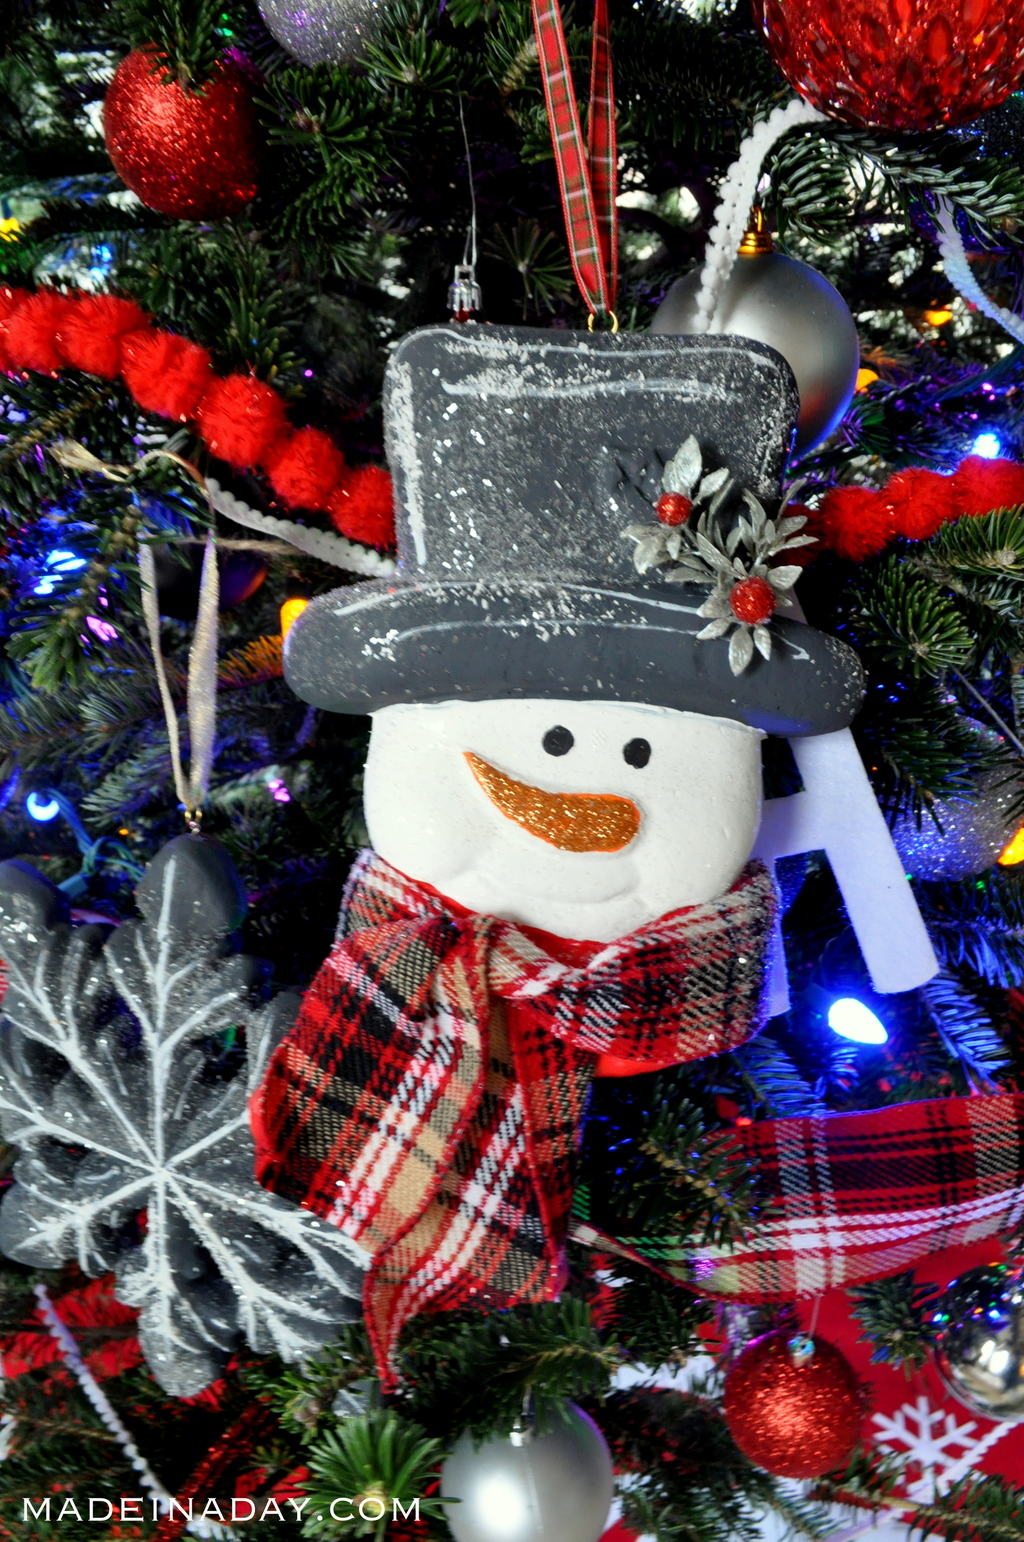 Chalkboard Snow Flocked Snowman Ornament madeinaday.com